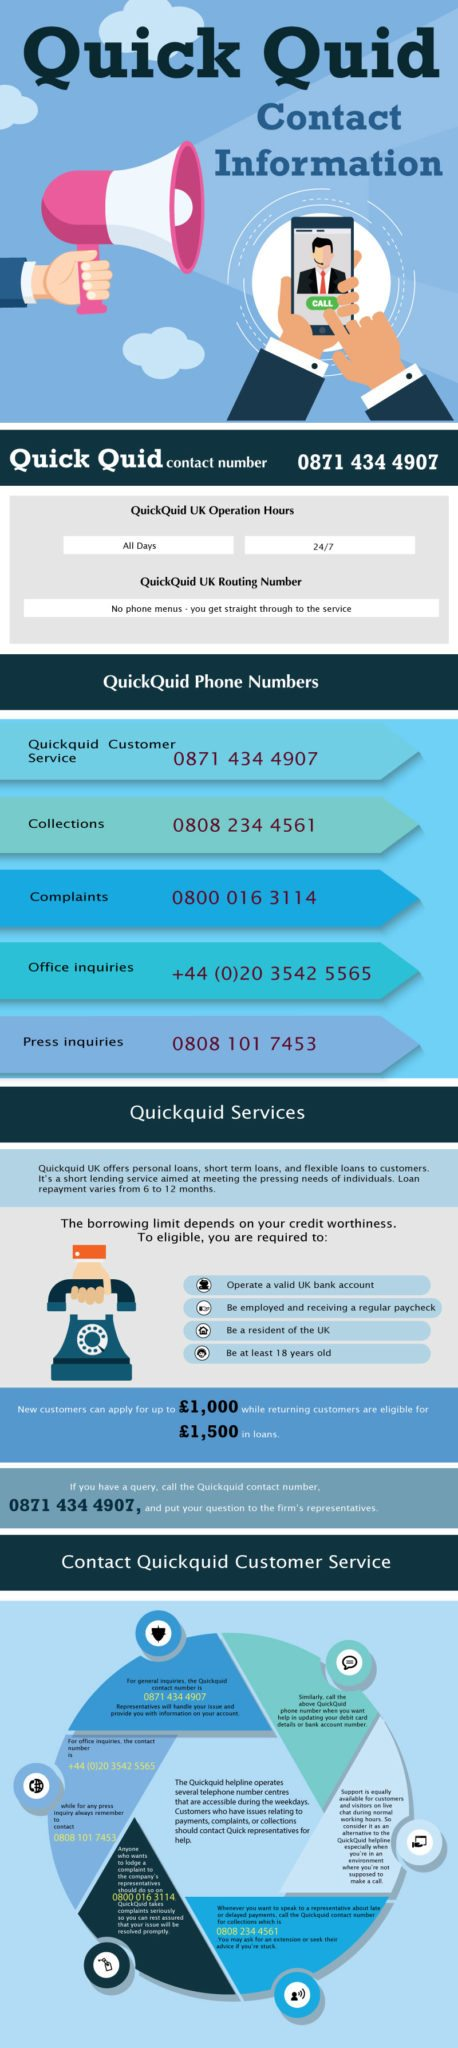 Quick Quid Contact Number